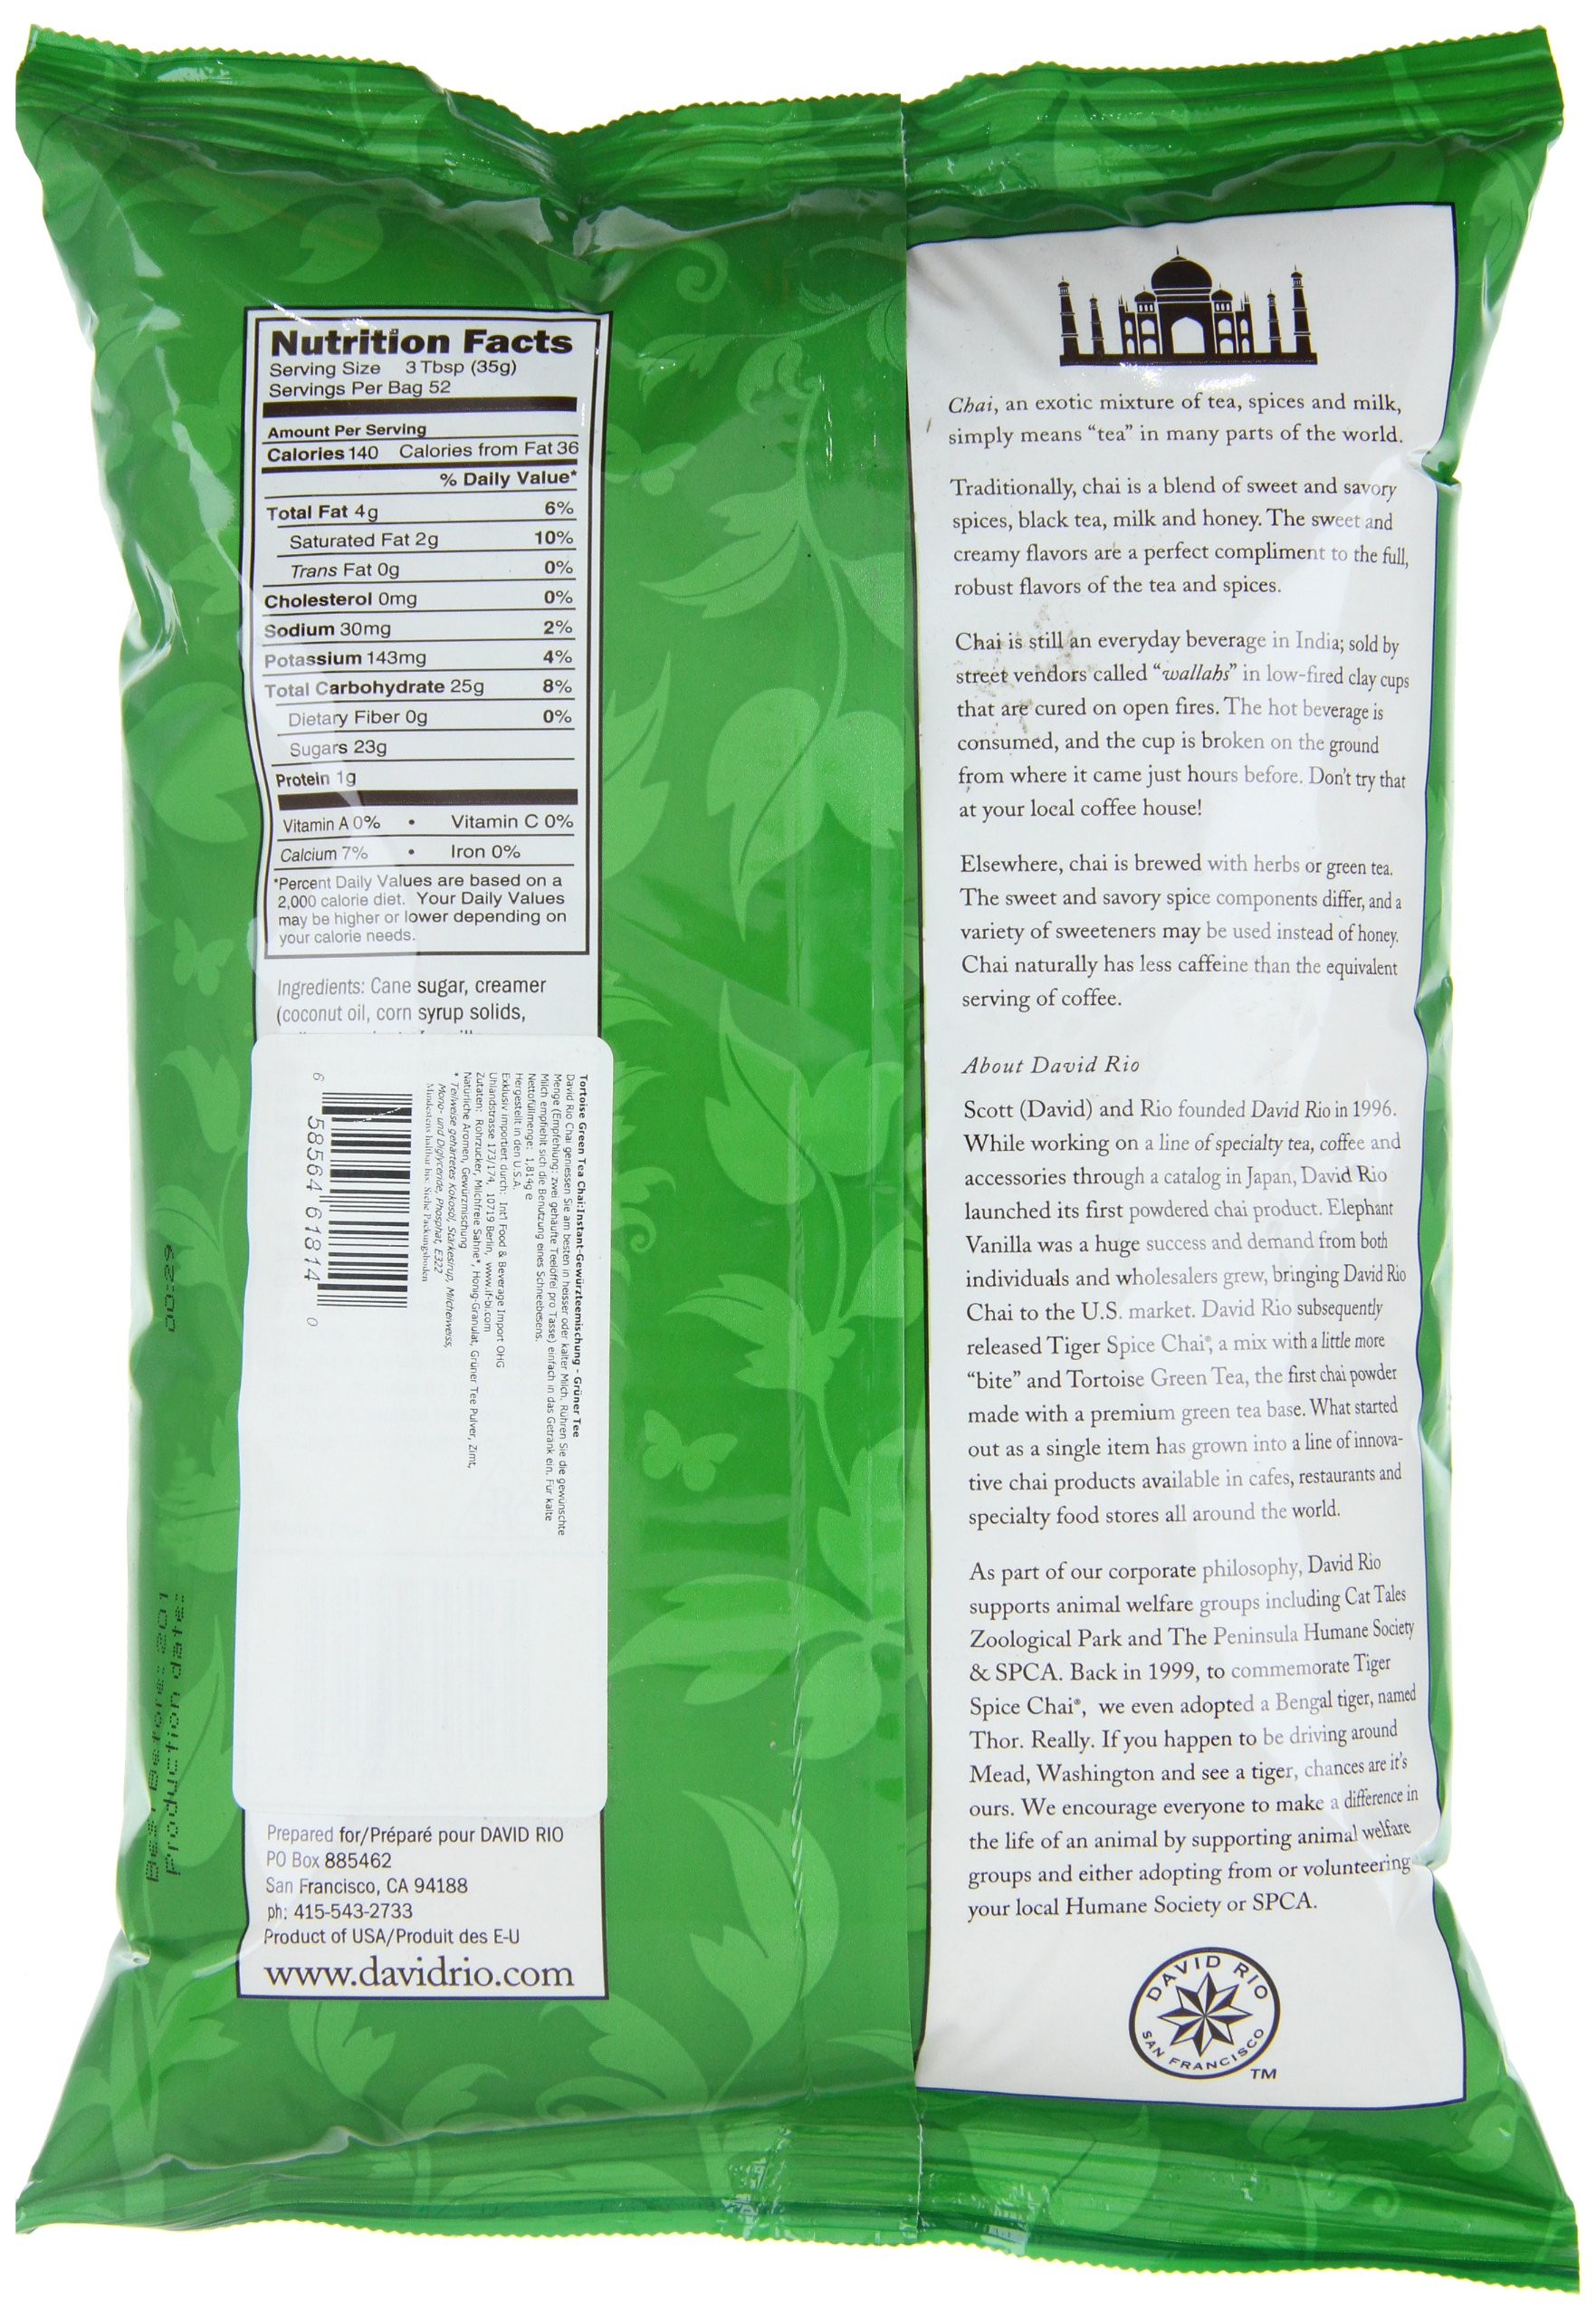 Tortoise Green Tea Chai, 4lb. Bag by David Rio